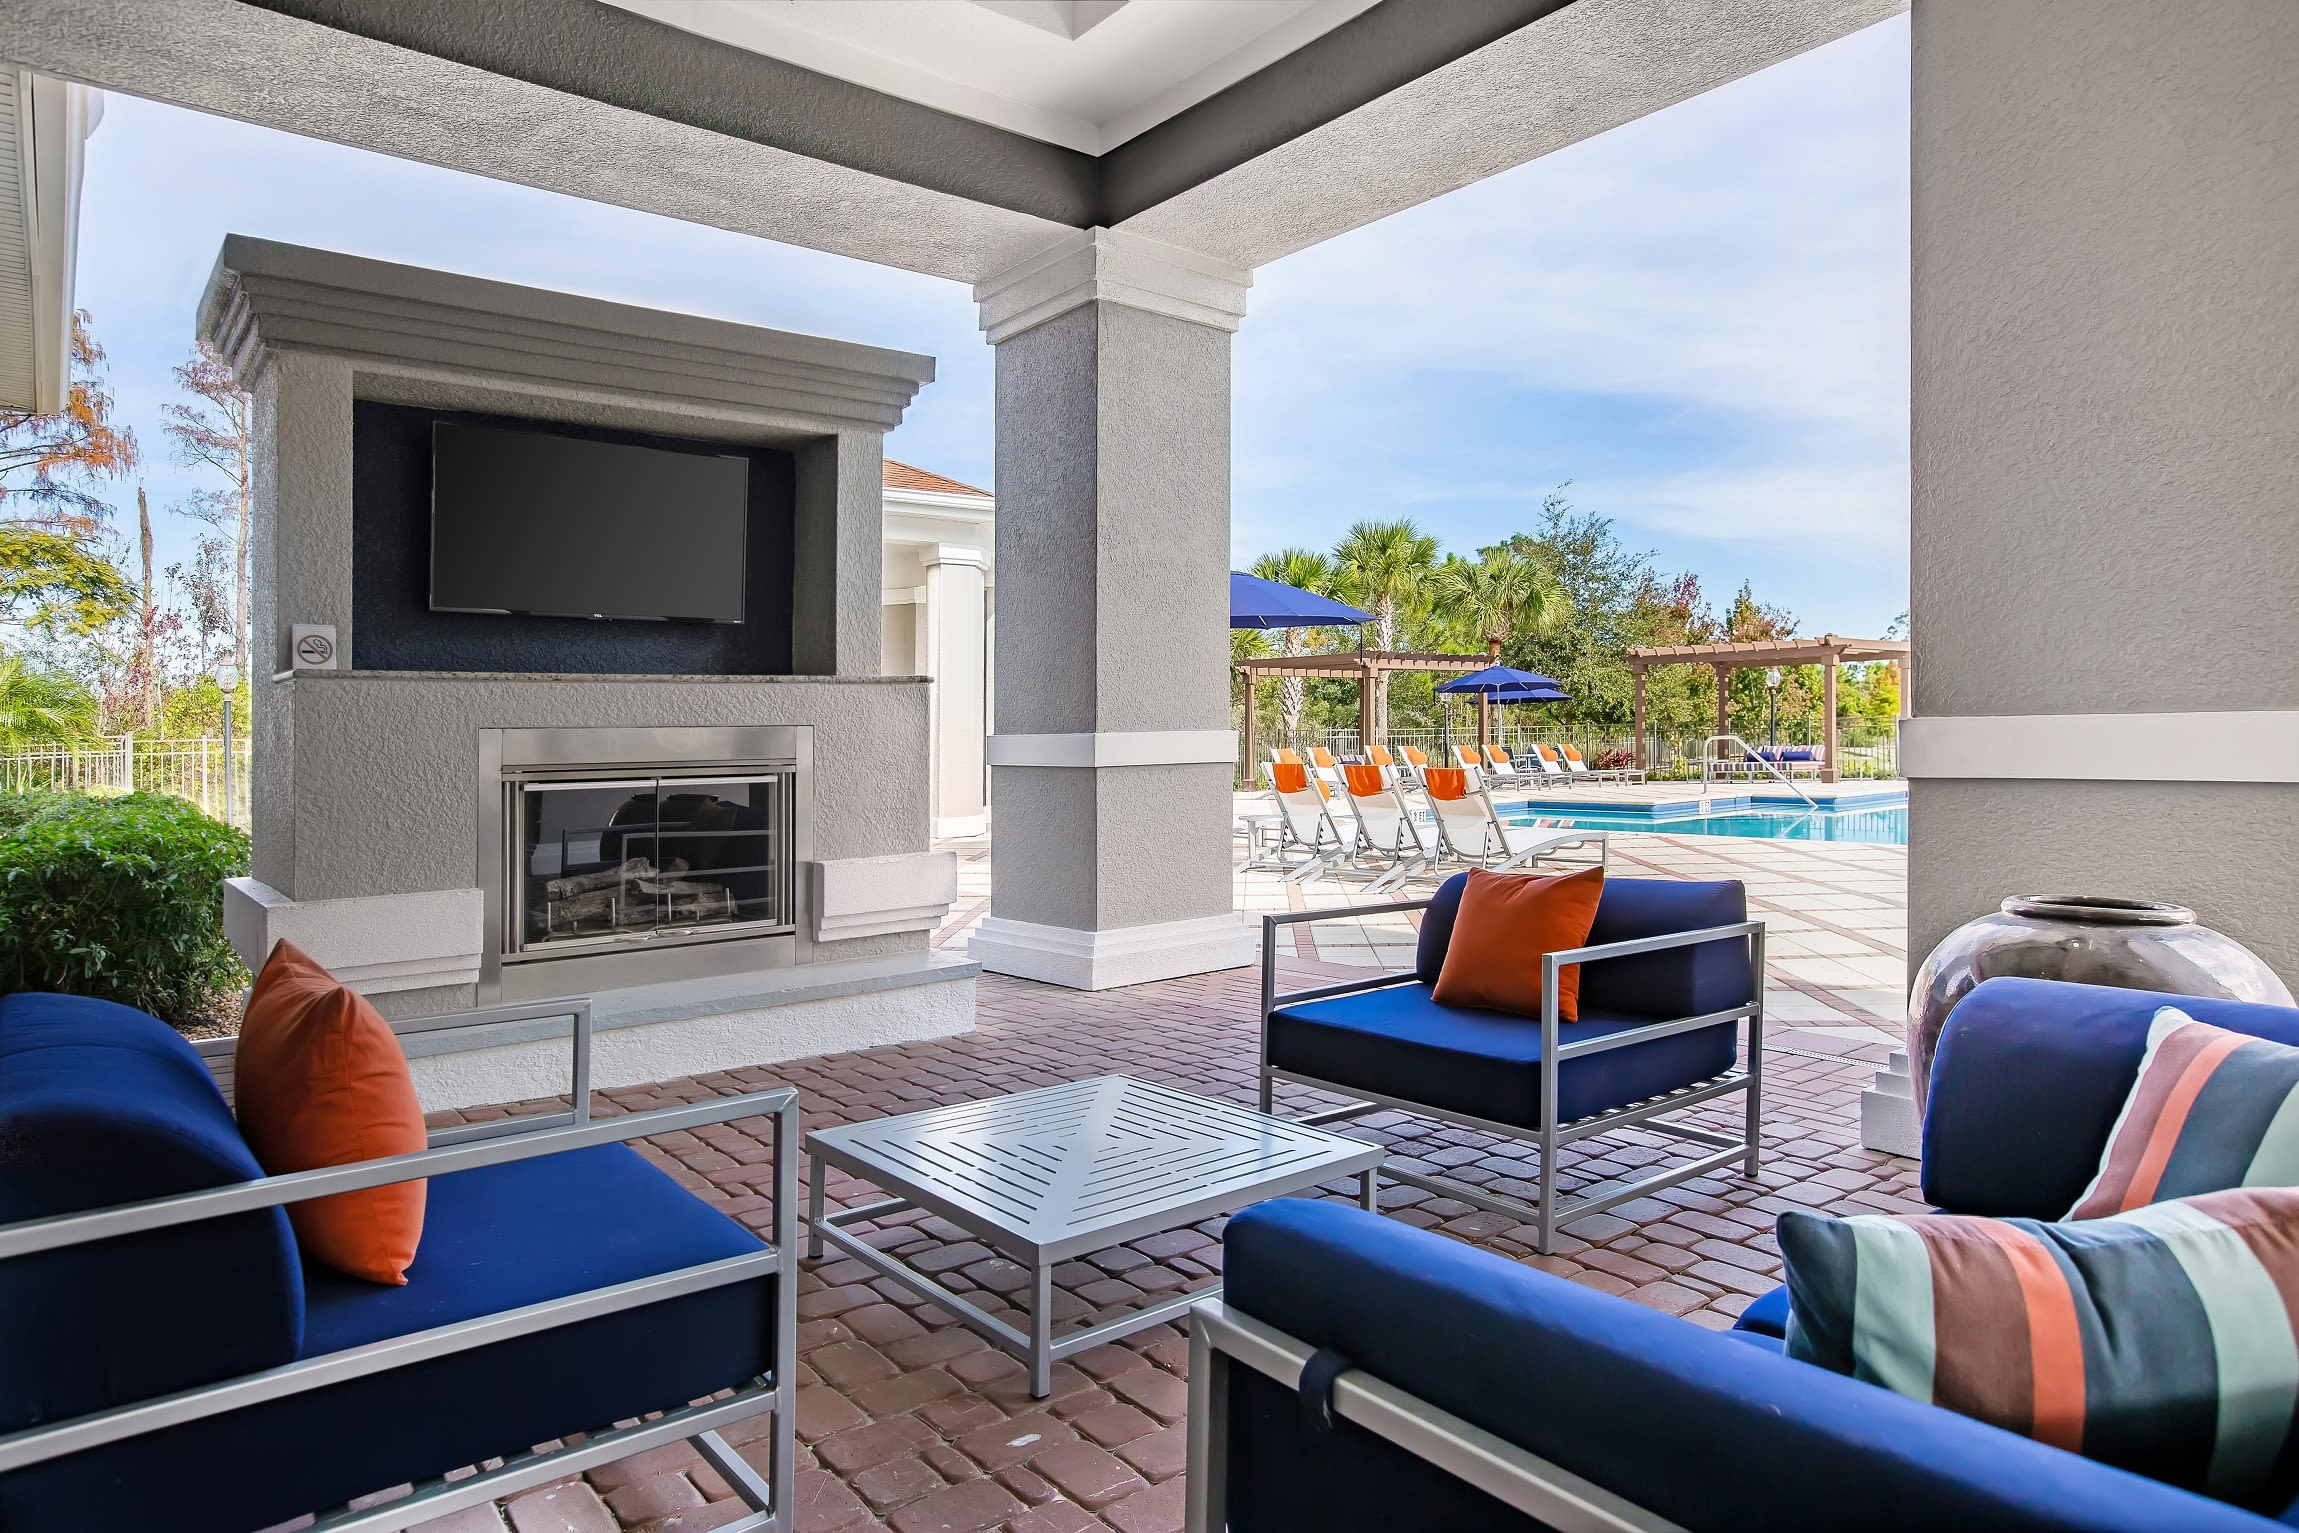 Pool area at The Aspect in Kissimmee, Floridalocation_name}} in Kissimmee, Florida